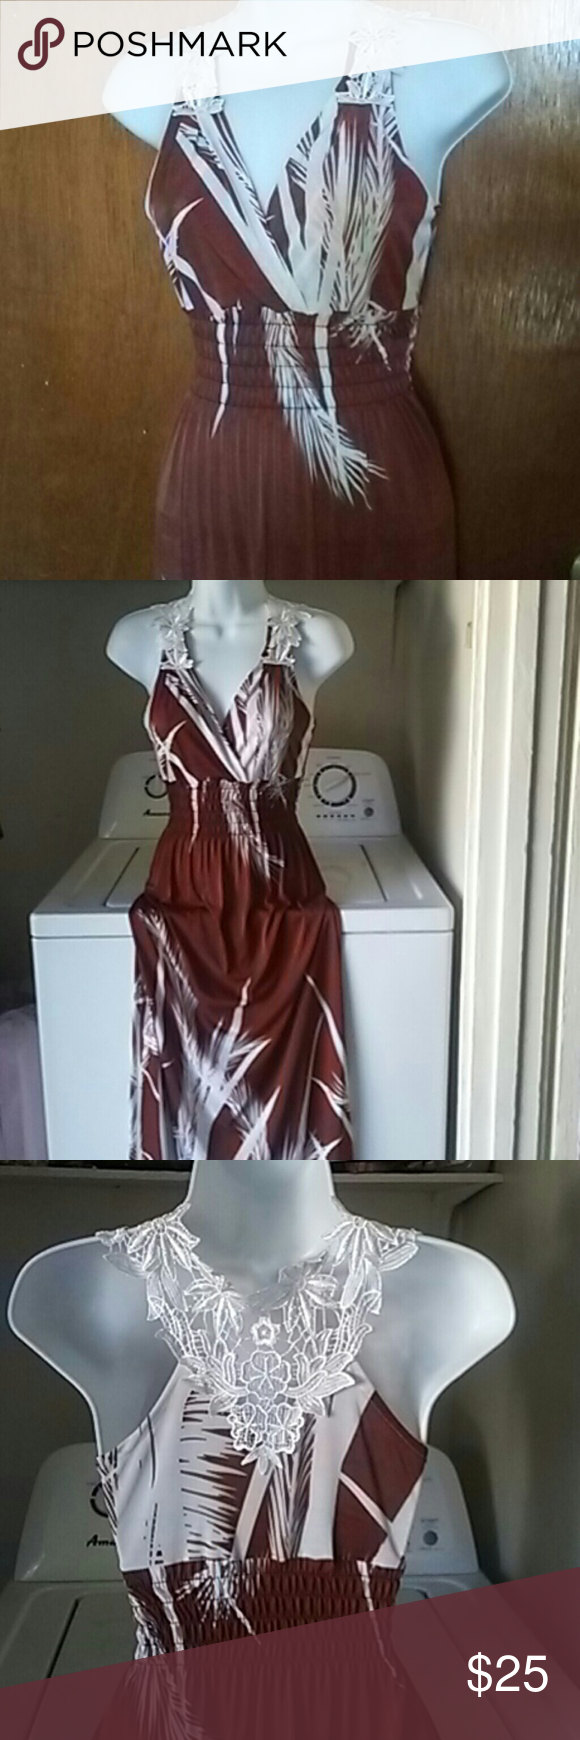 Long maxi dress Brown and white maxi dress with beautiful white embroidery on the shoulders and back. Cinched waist . this is brand new. BCBGMaxAzria Dresses Maxi